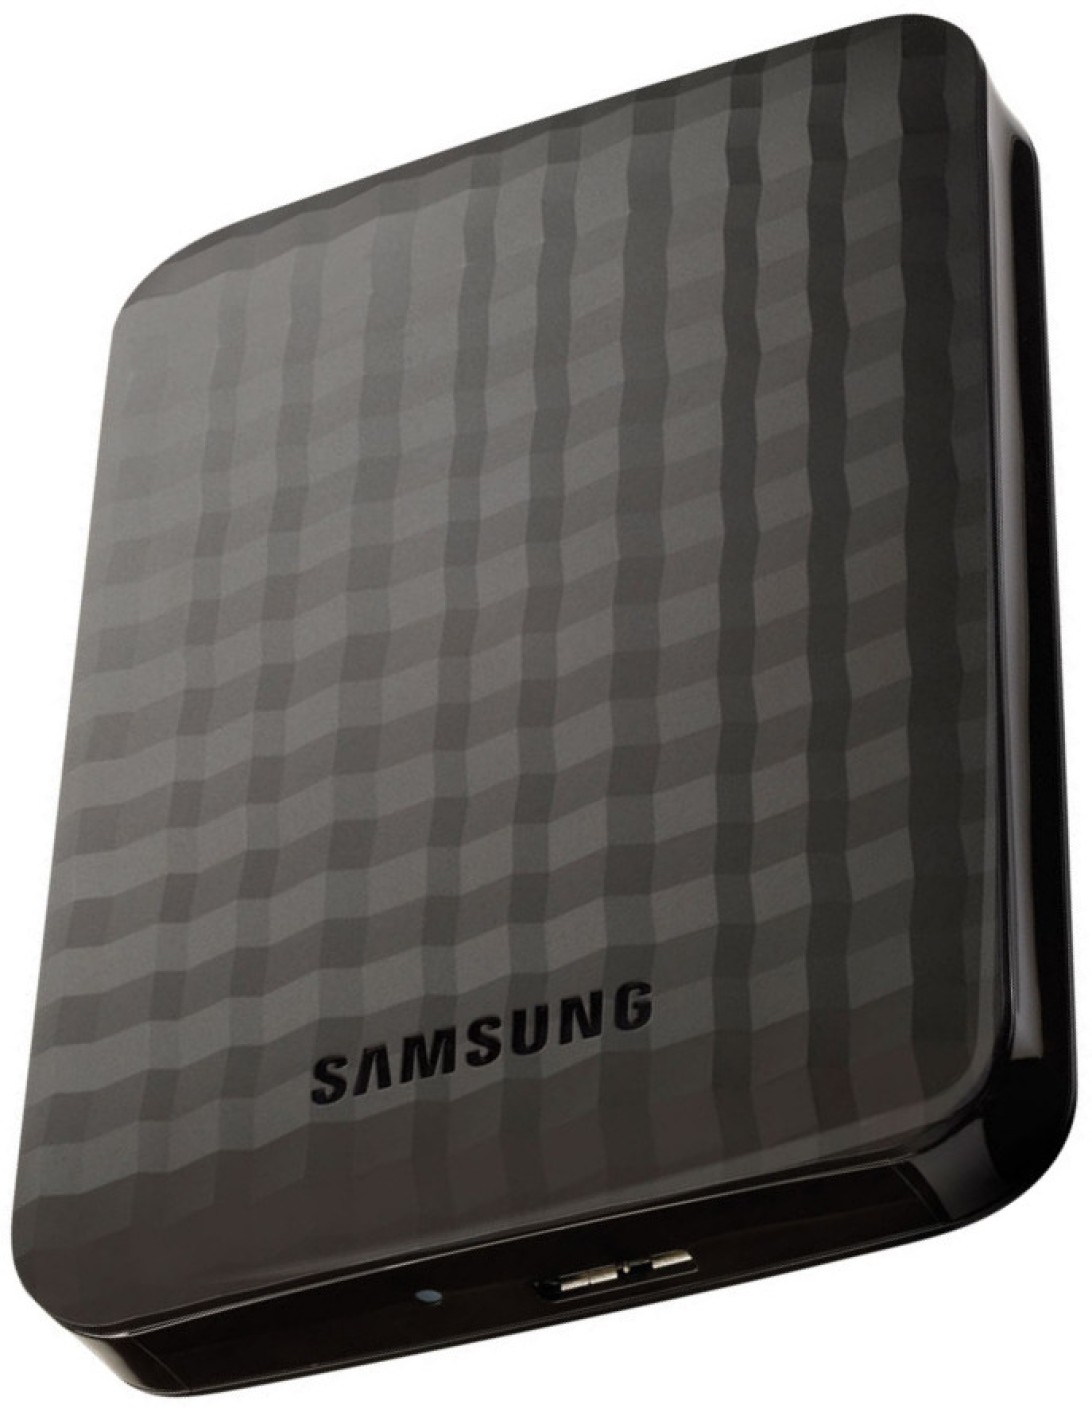 samsung m3 portable 2 tb external hard drive samsung. Black Bedroom Furniture Sets. Home Design Ideas